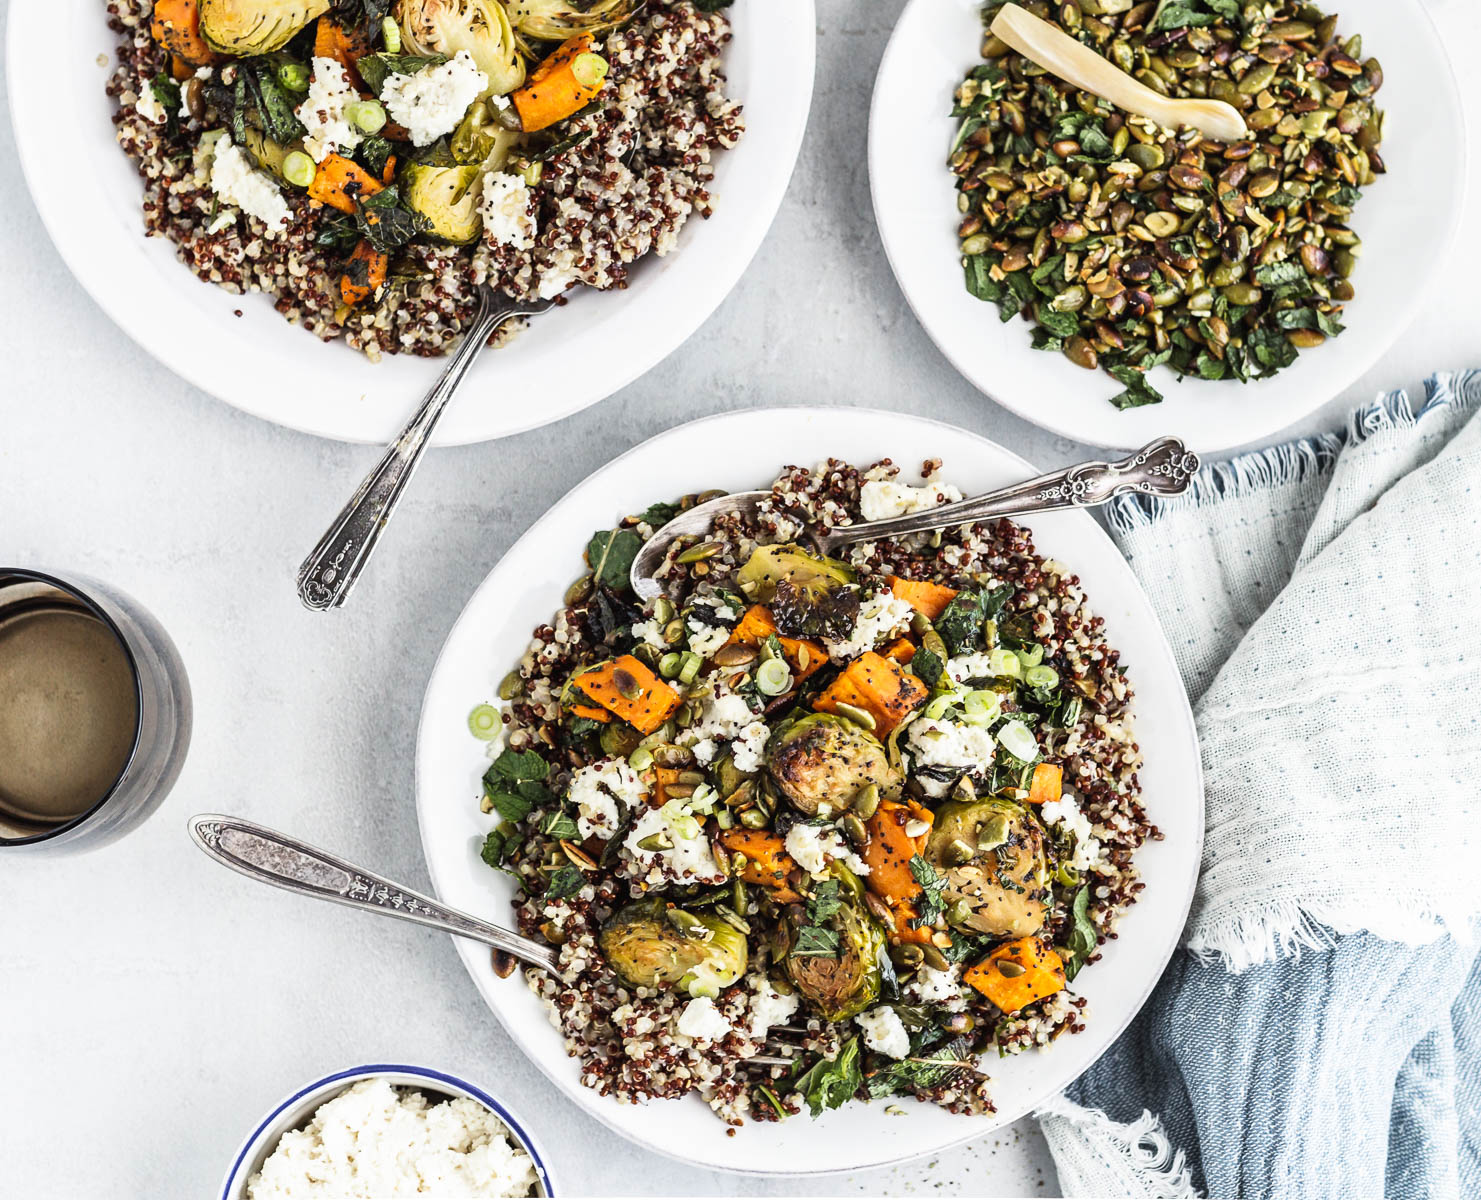 A plate of quinoa, Brussels sprouts, and sweet potato mixed with vegetable ricotta-style cheese